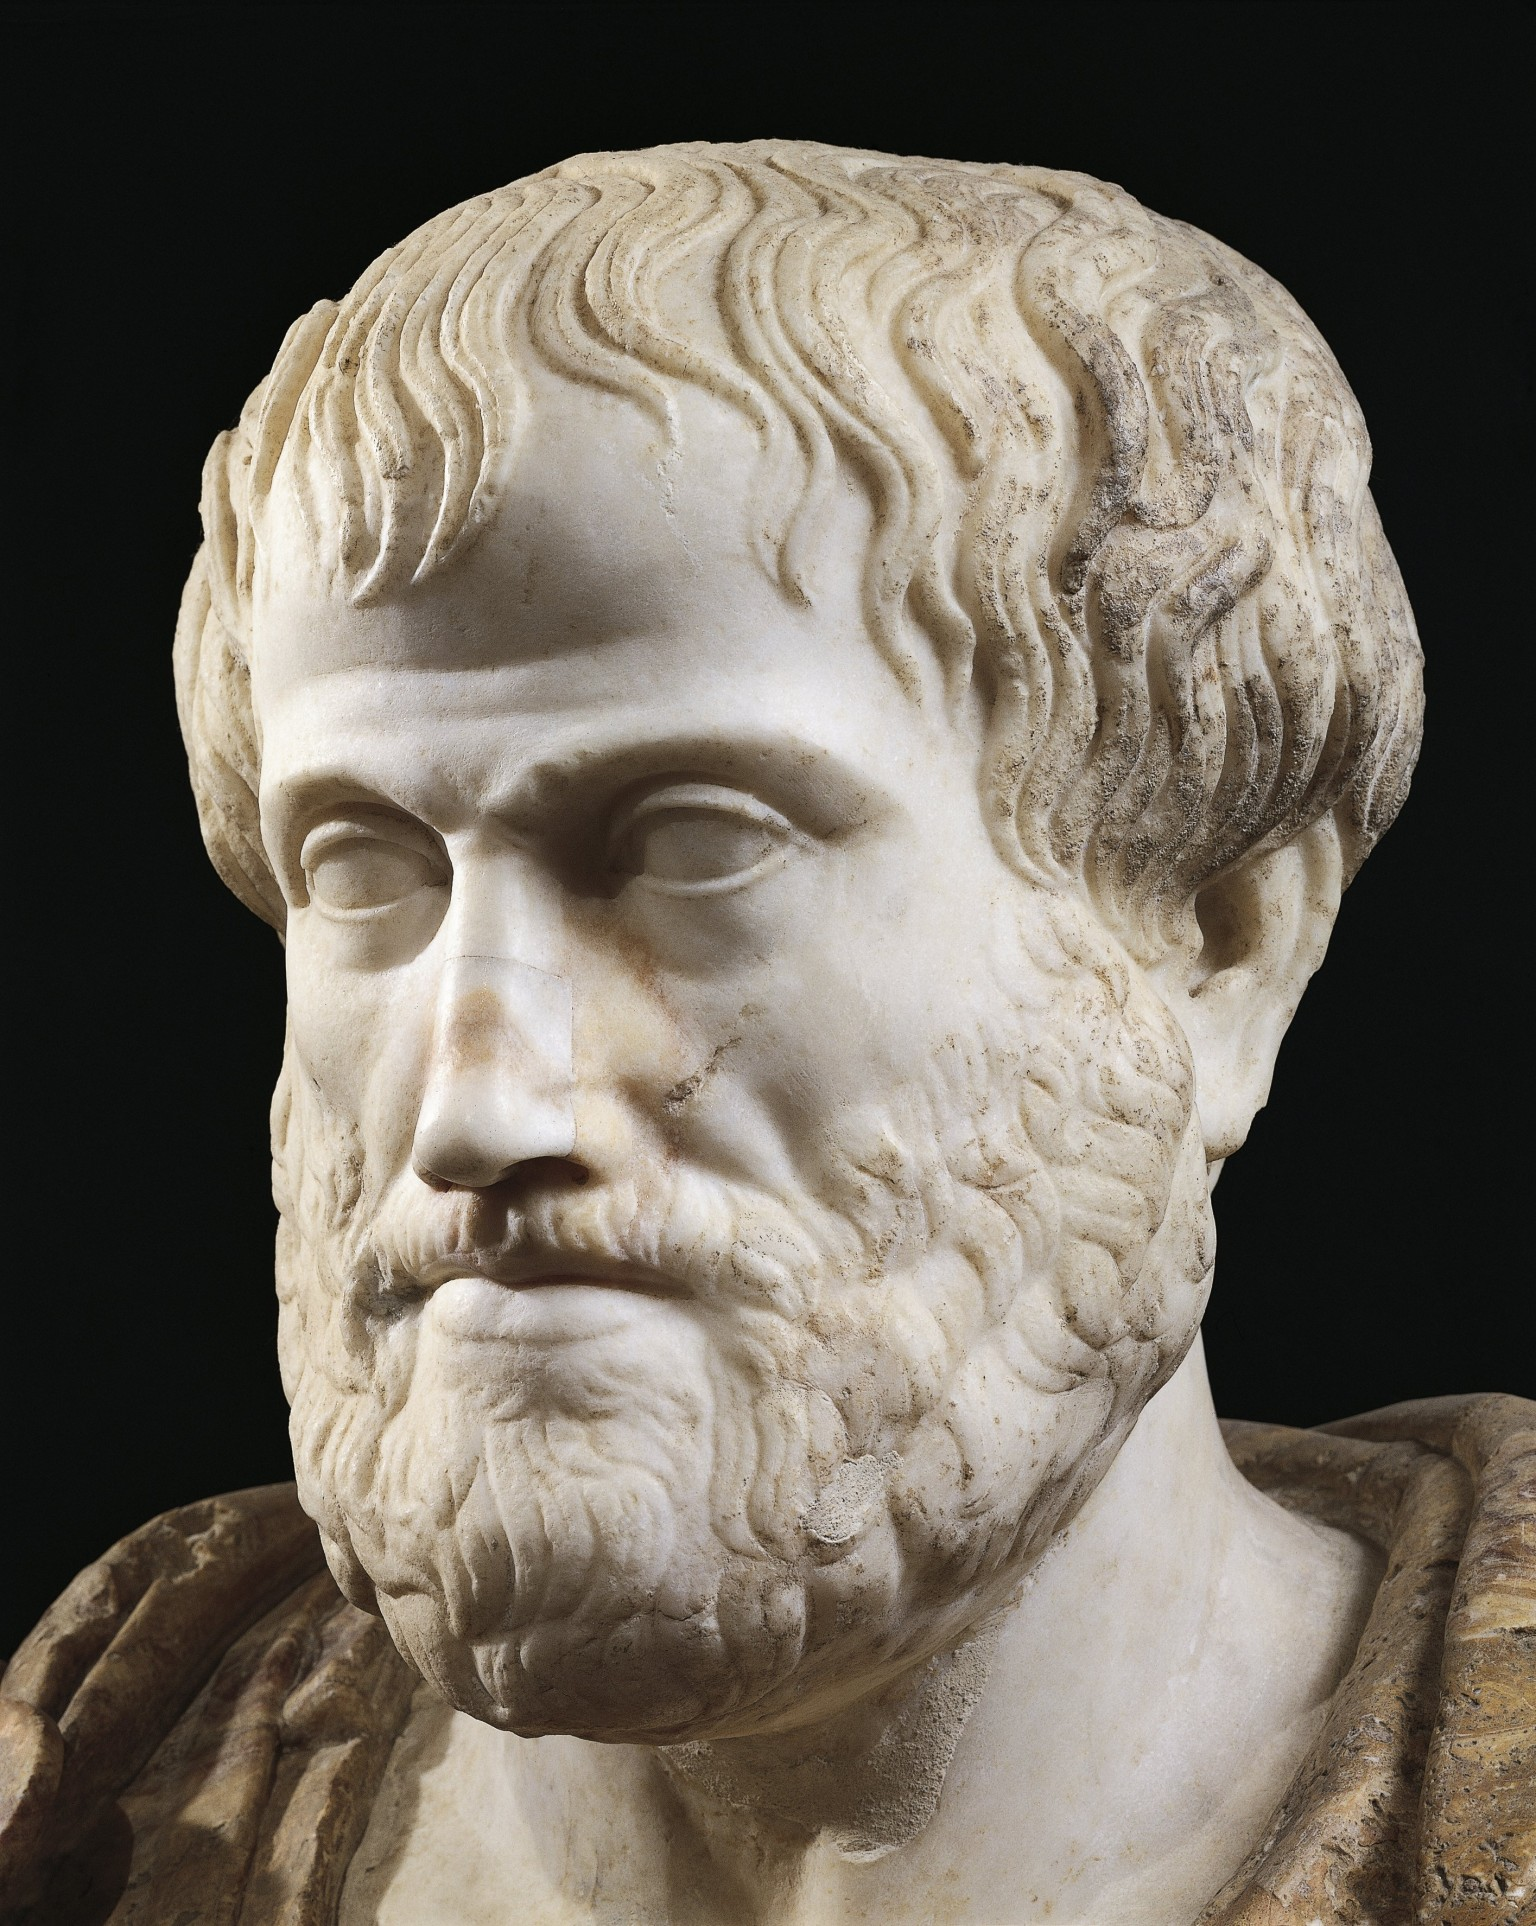 aristotle slavery Aristotle leaves room for the possibility that habitual engagement with activities appropriate for a free person can make one, in fact, take on the nature of a free person.